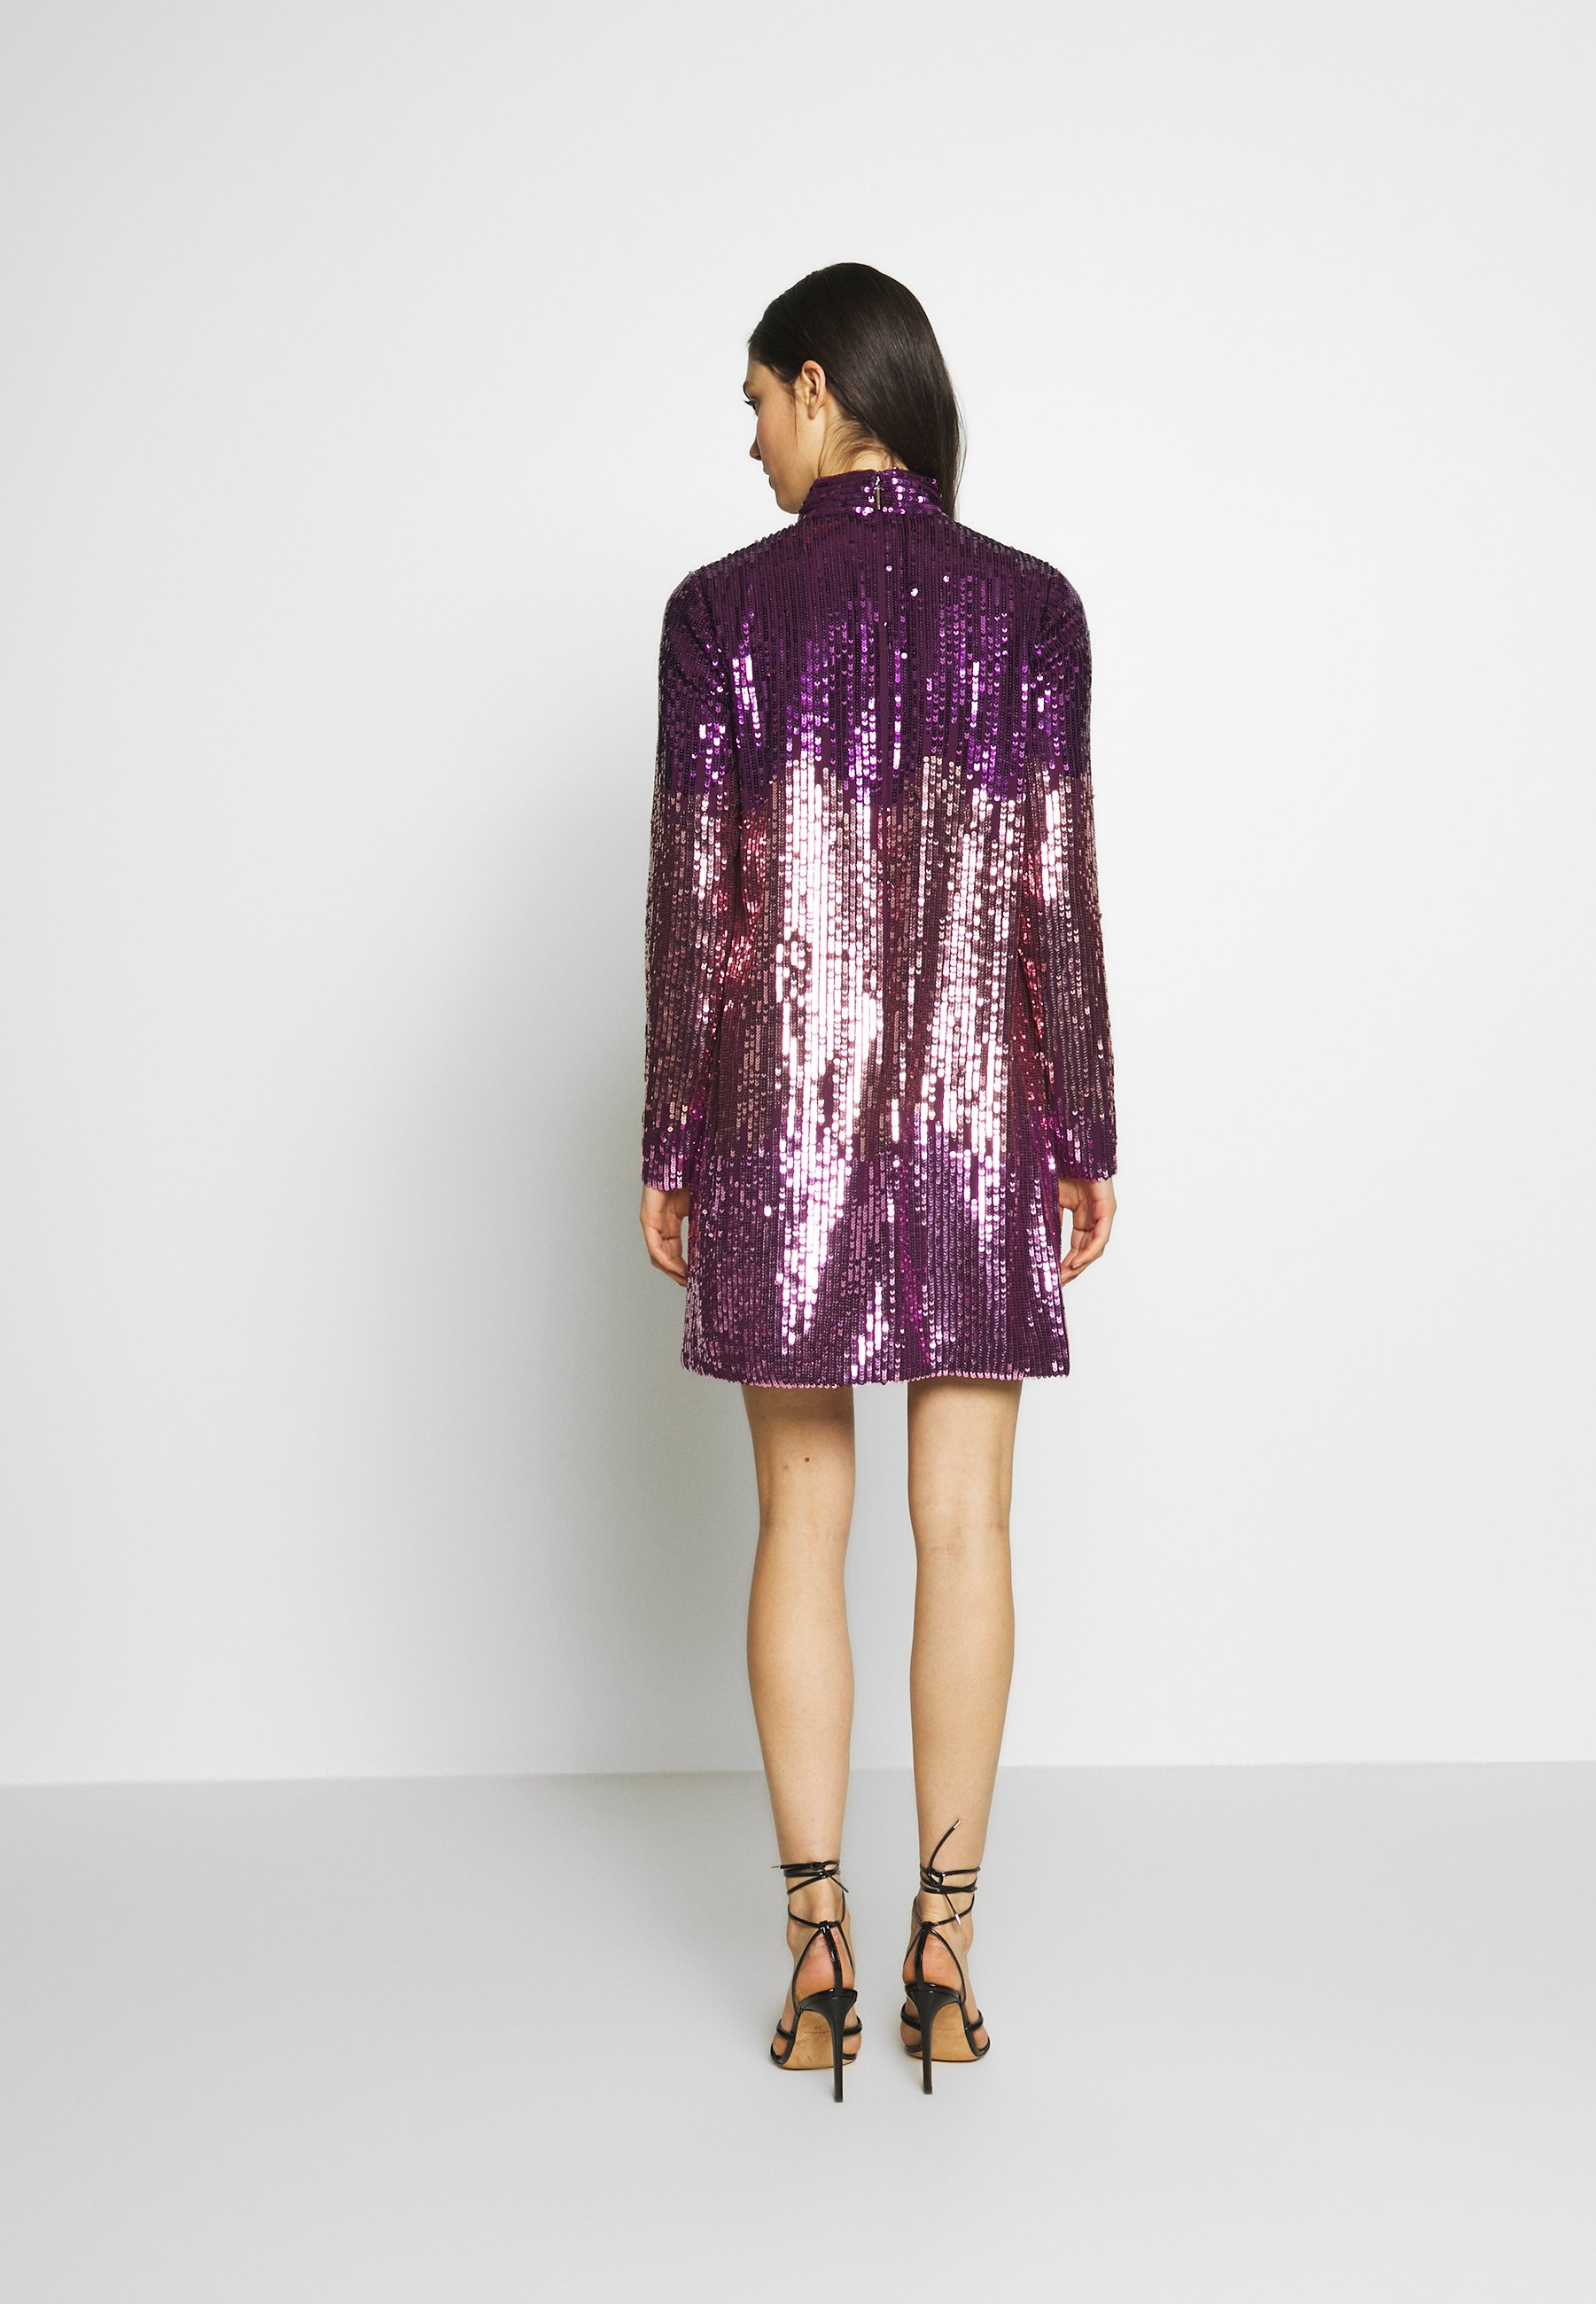 Kate Spade New York Ombre Sequin Dress - Cocktail / Party Plum Tree